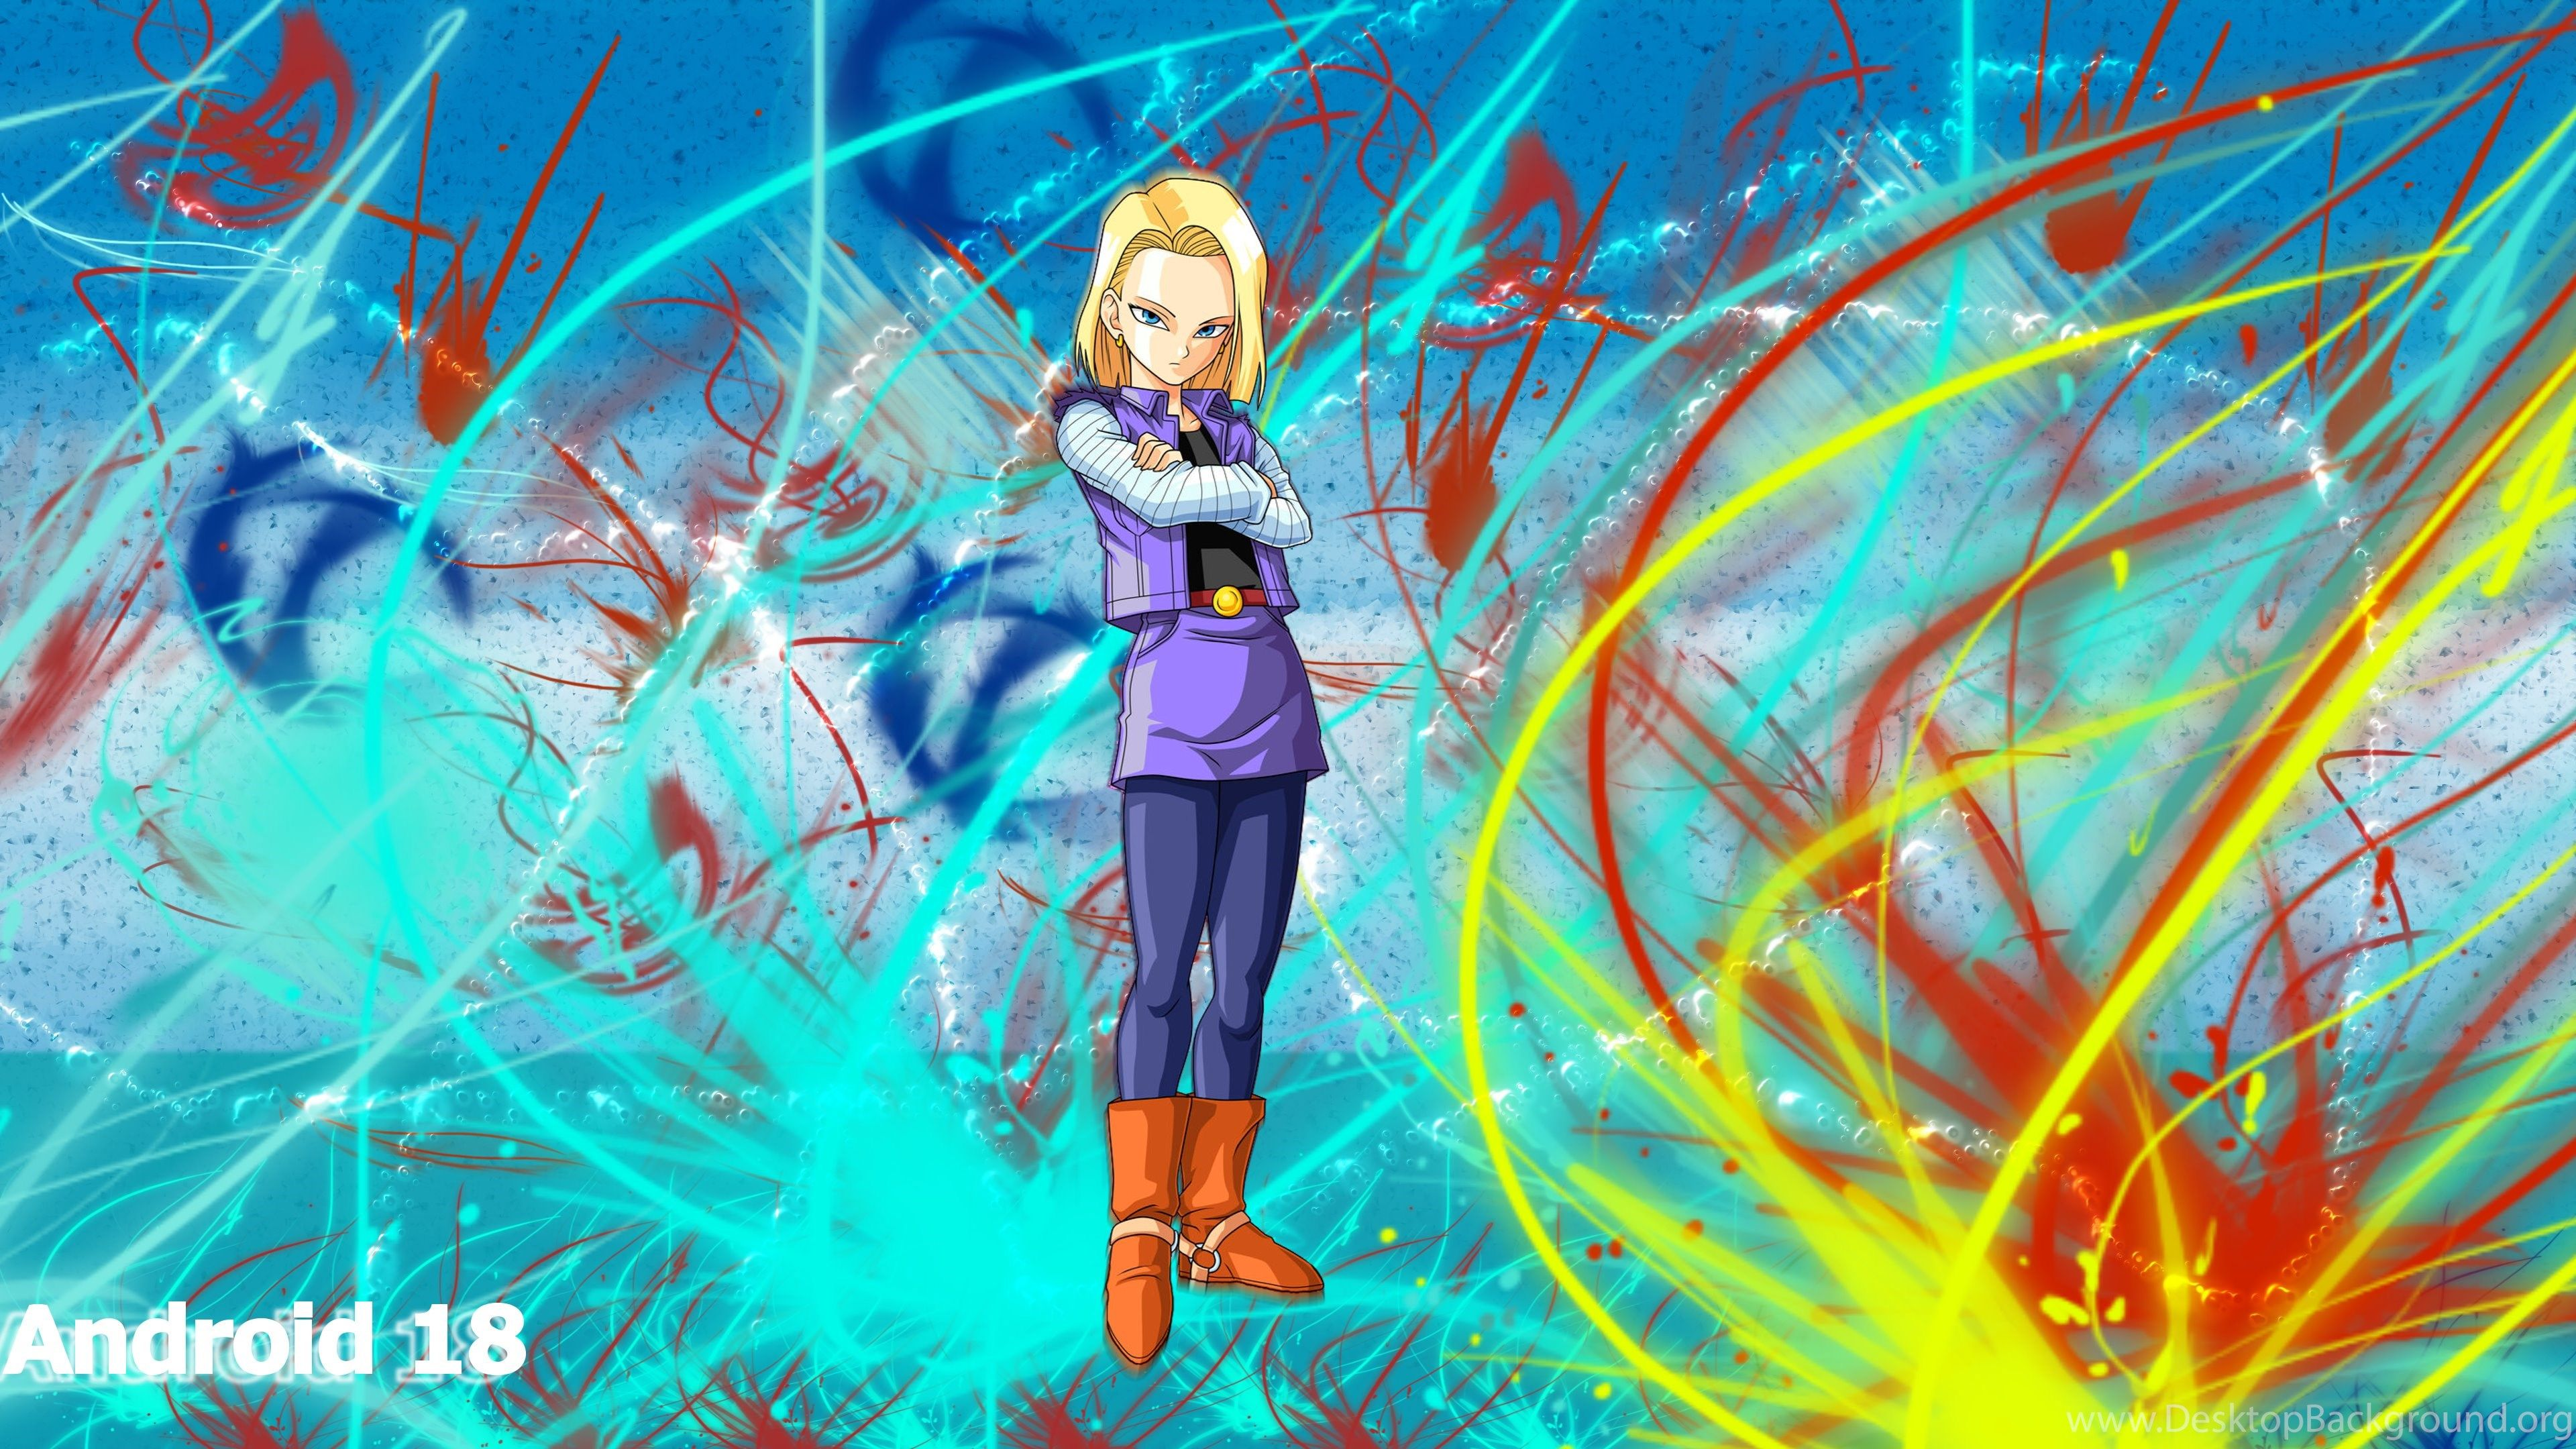 Android 18 Hd Wallpapers Wallpaper Cave